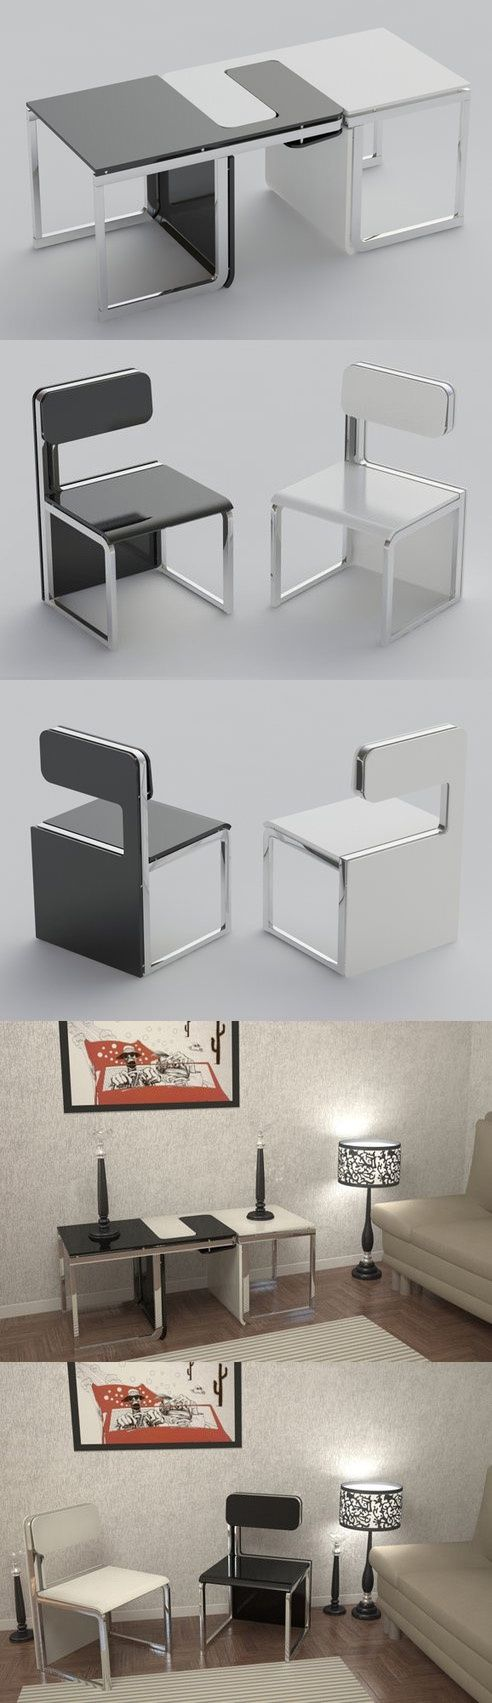 30 Awesome Multi Functional Chairs For Your Small House